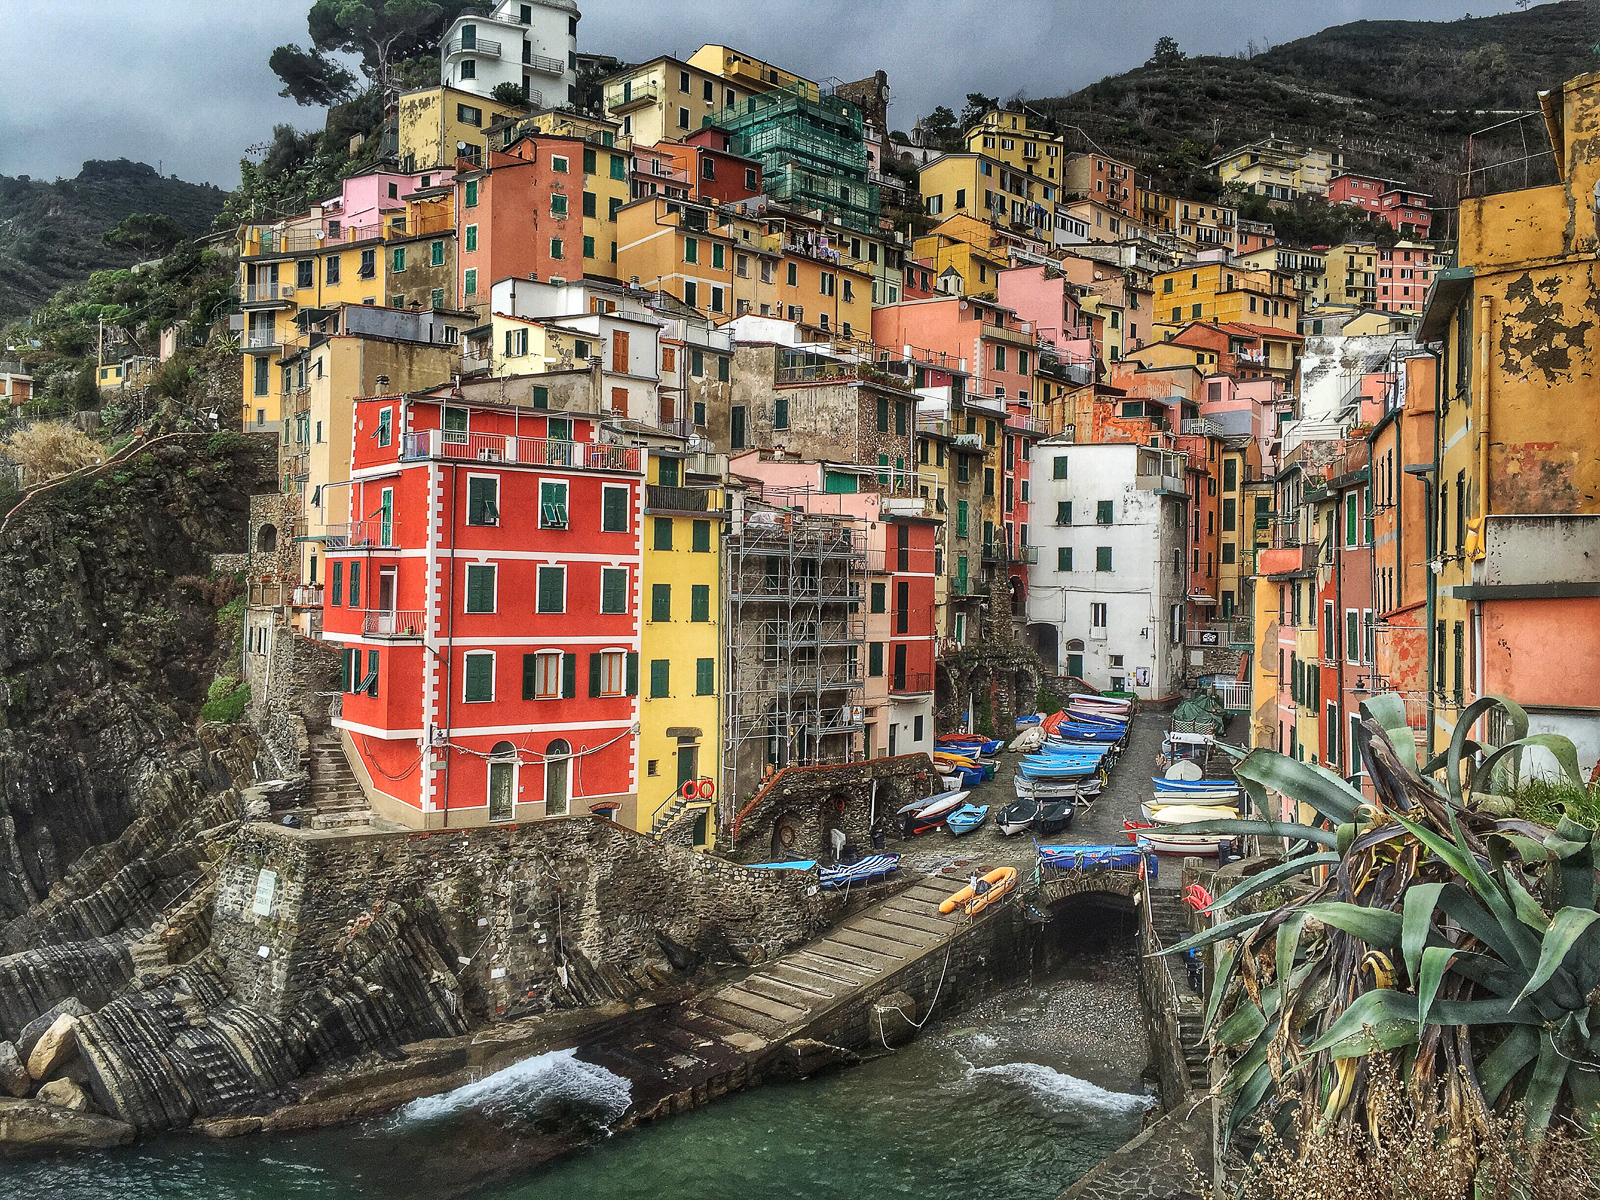 Riomaggiore. I've always wanted to visit Cinque Terre.